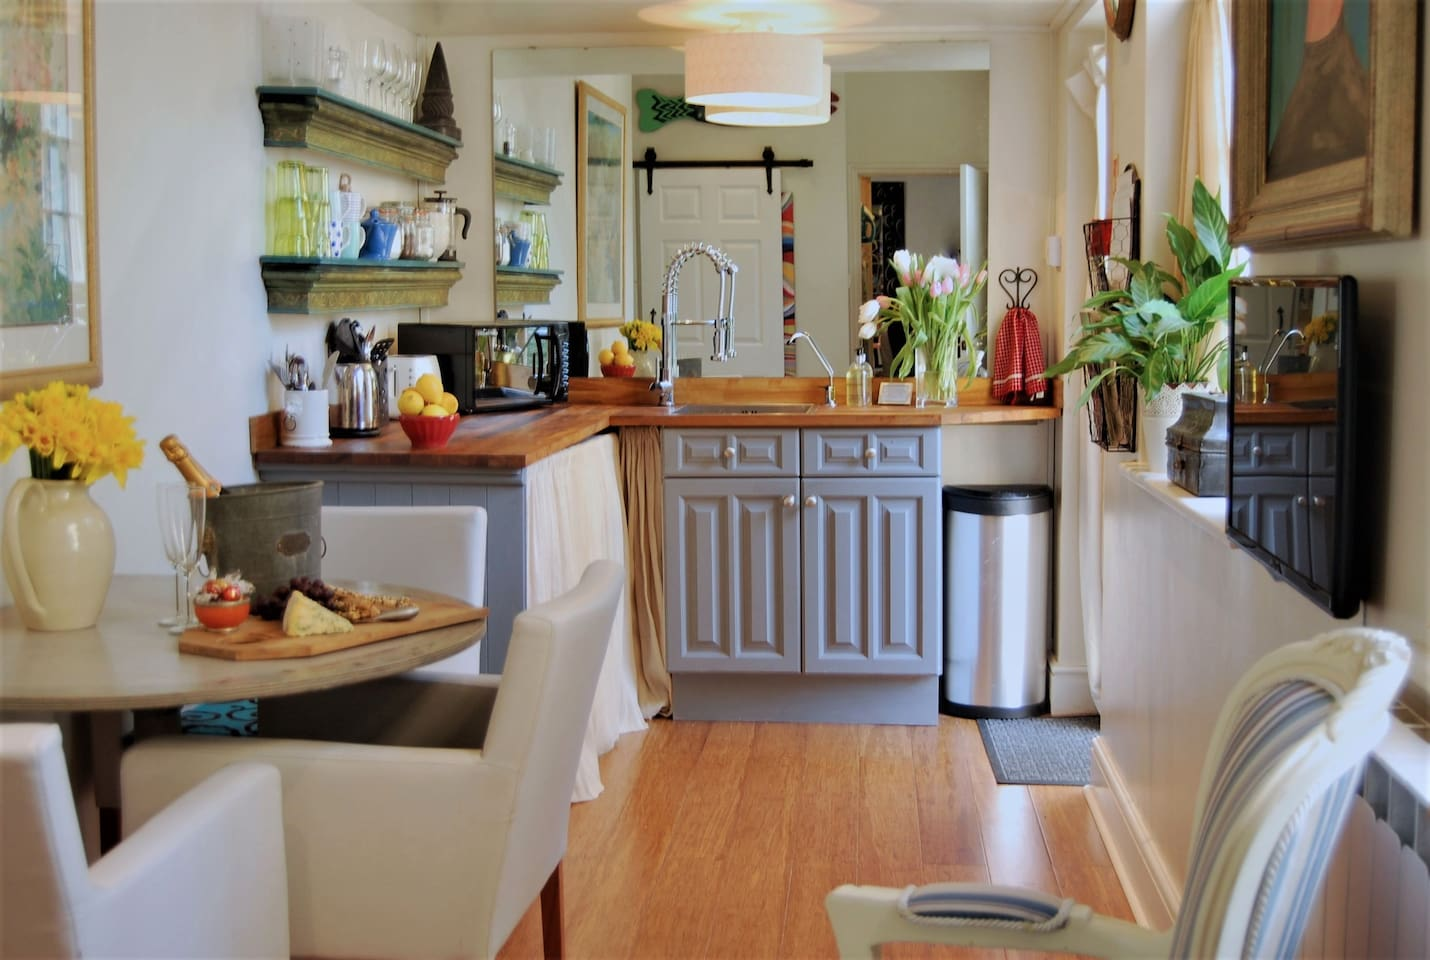 The newly updated kitchen includes a mini-fridge, filtered water, a hob/cooktop, pots and pans and cooking utensilas as well as a microwave and espresso machine.  Coffee and a selection of teas are supplied too!